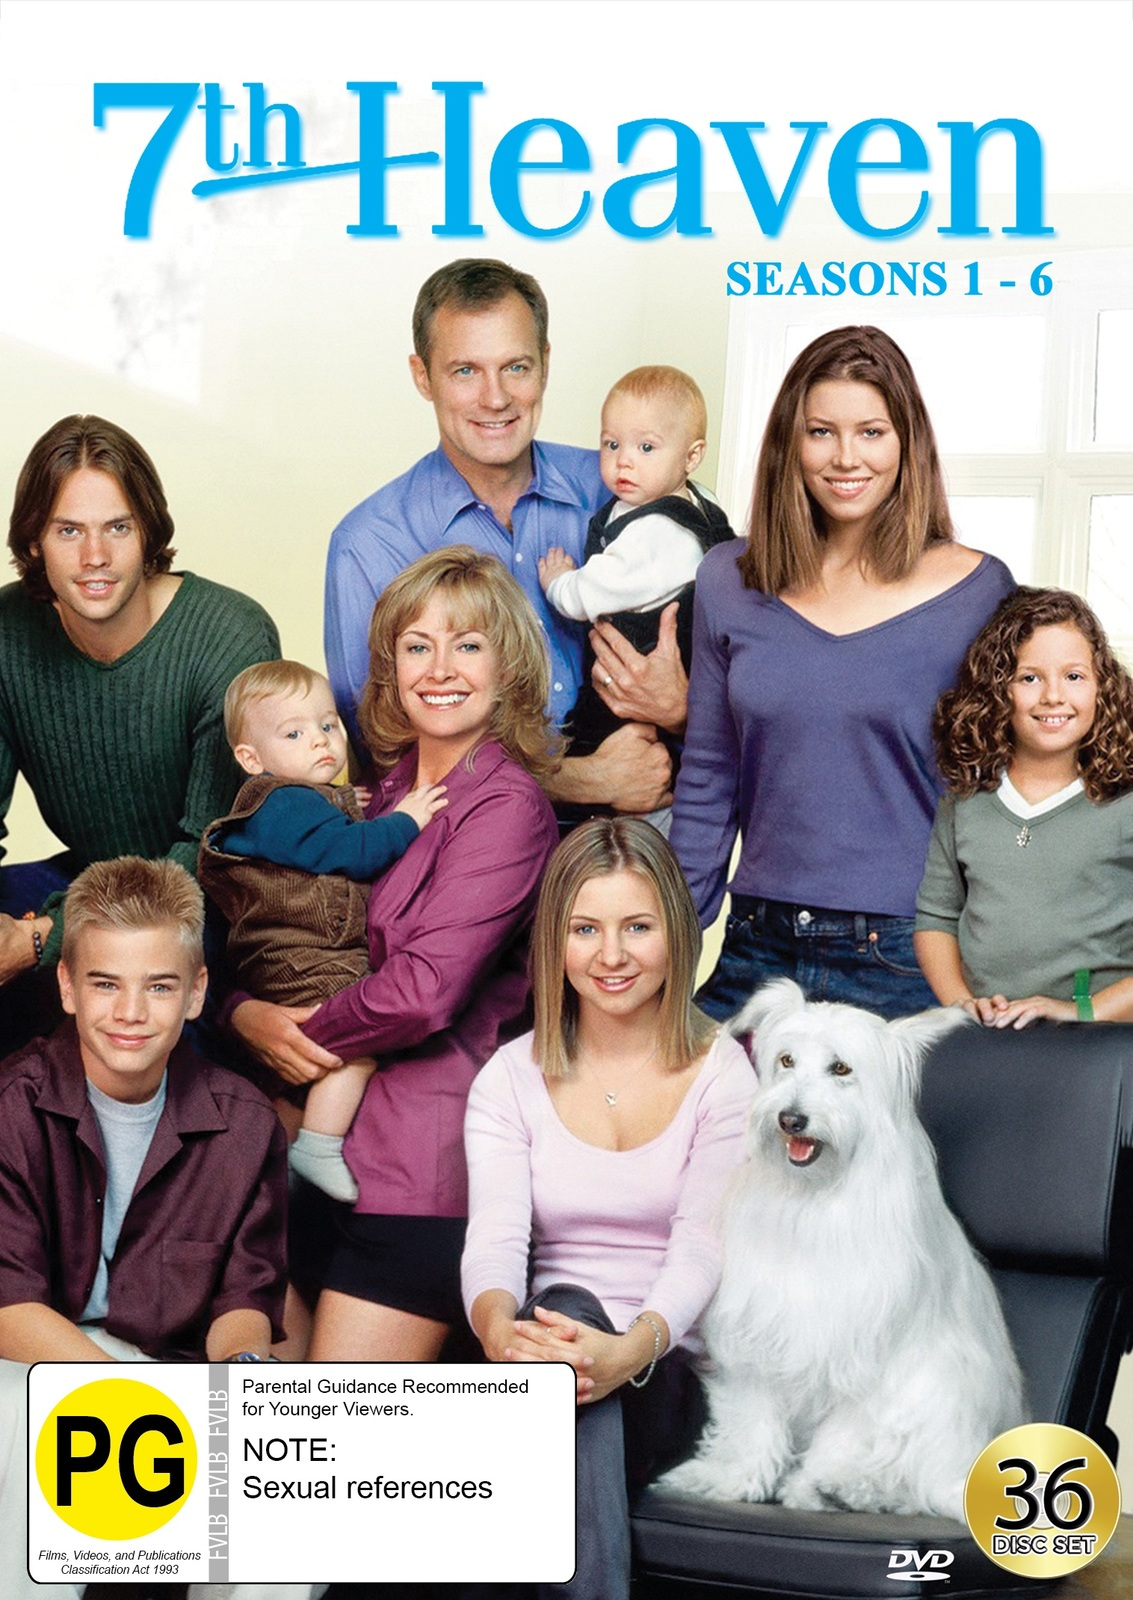 7th Heaven: Collection One - Seasons 1-6 on DVD image